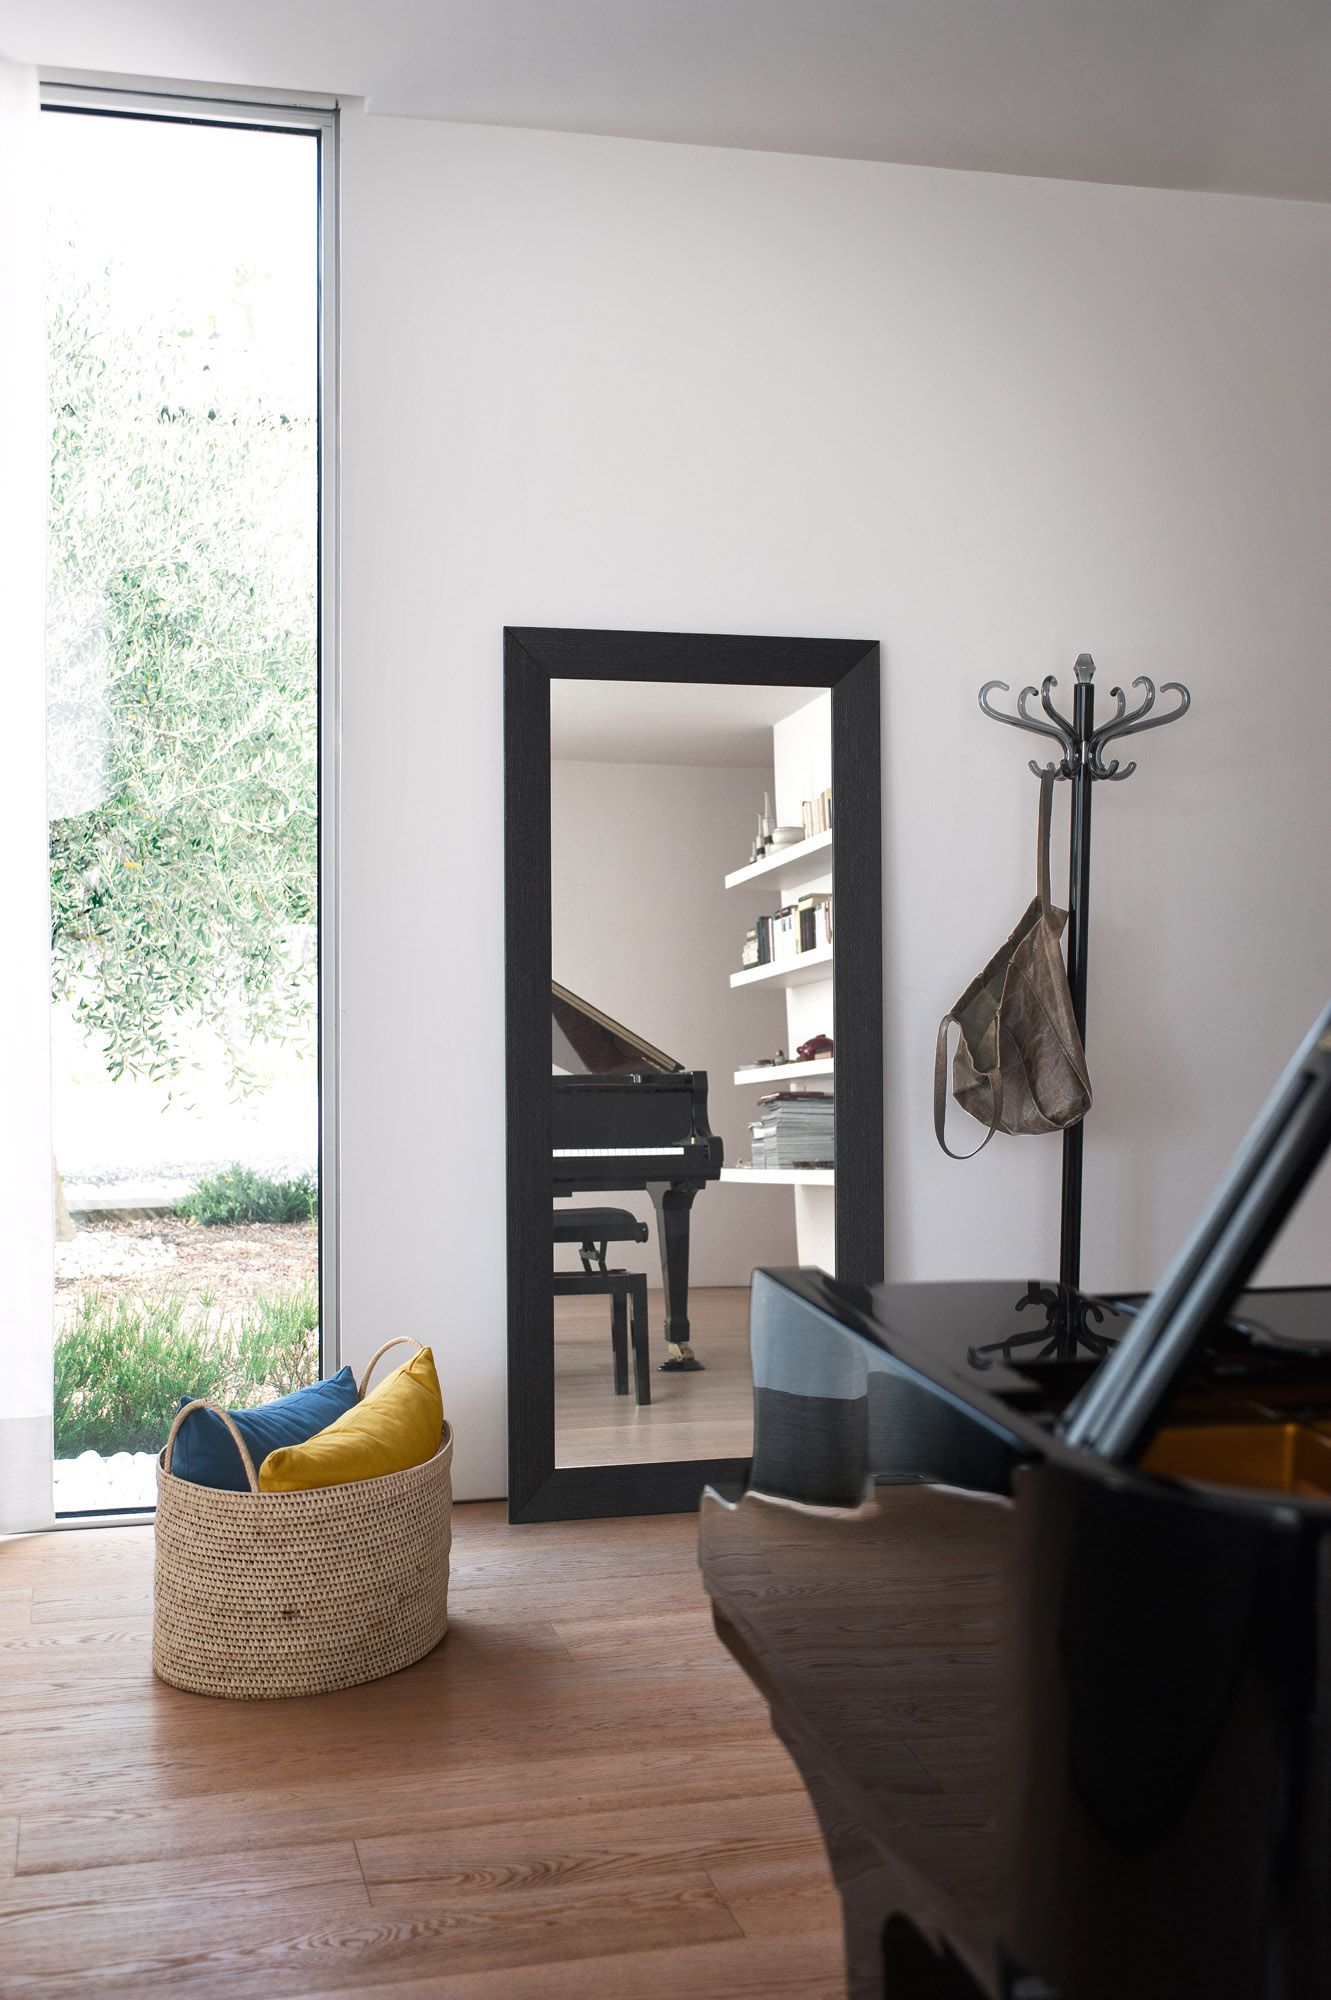 DOUBLE is a large mirror suitable for living areas as well as ...